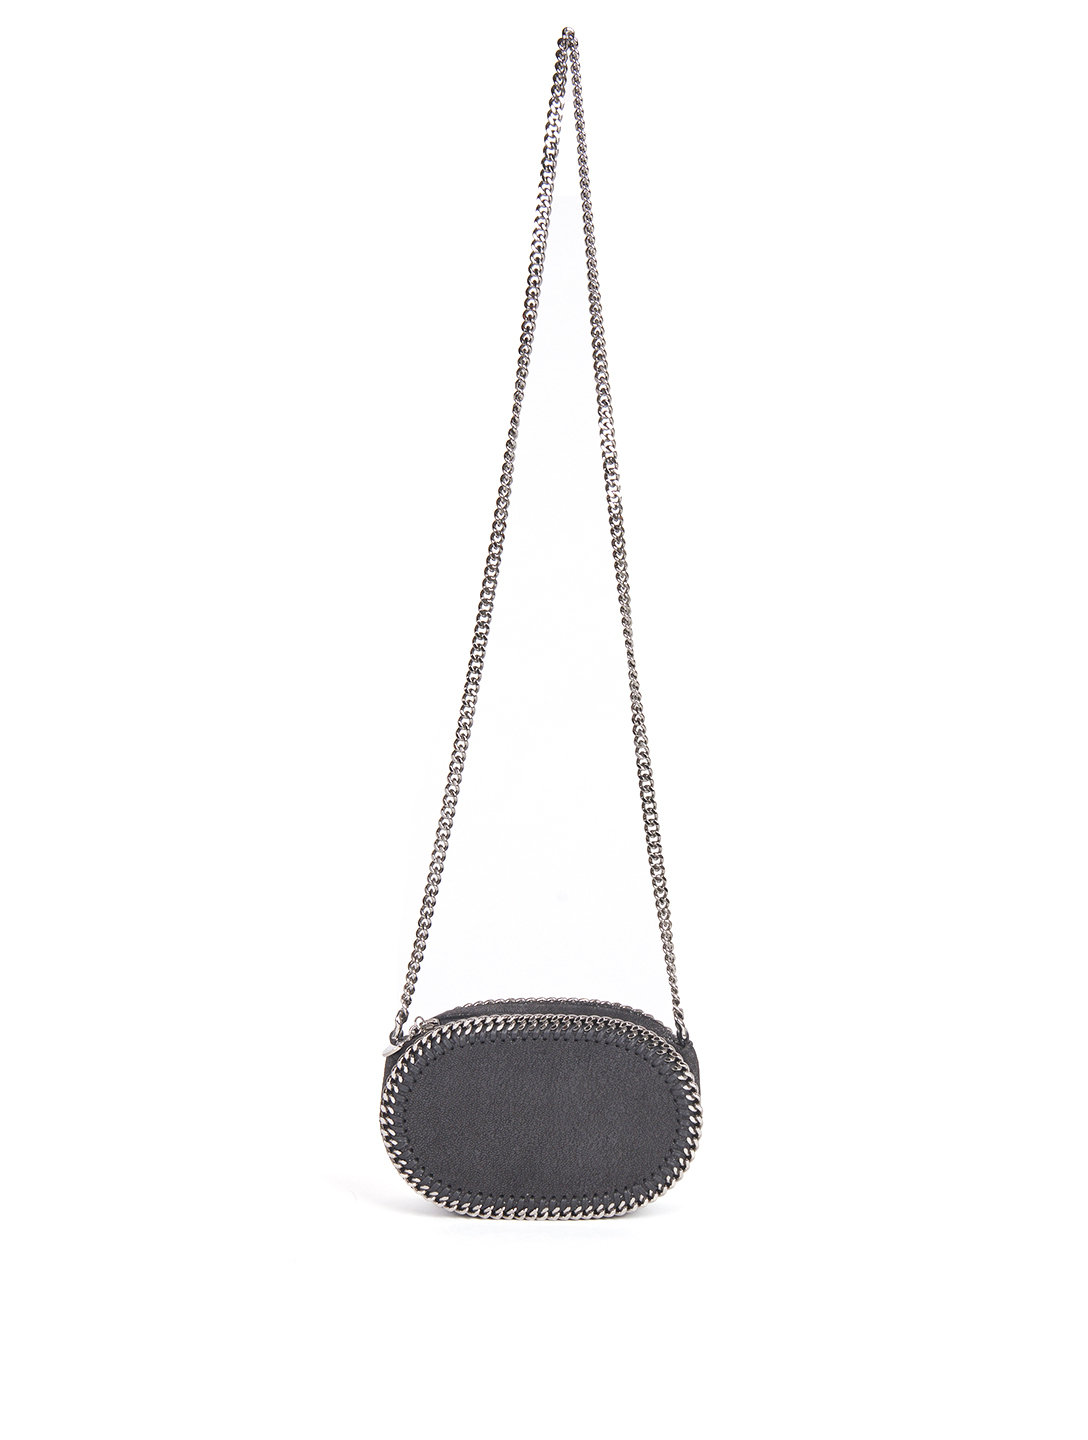 STELLA MCCARTNEY Falabella Oval Crossbody Bag Women's Black